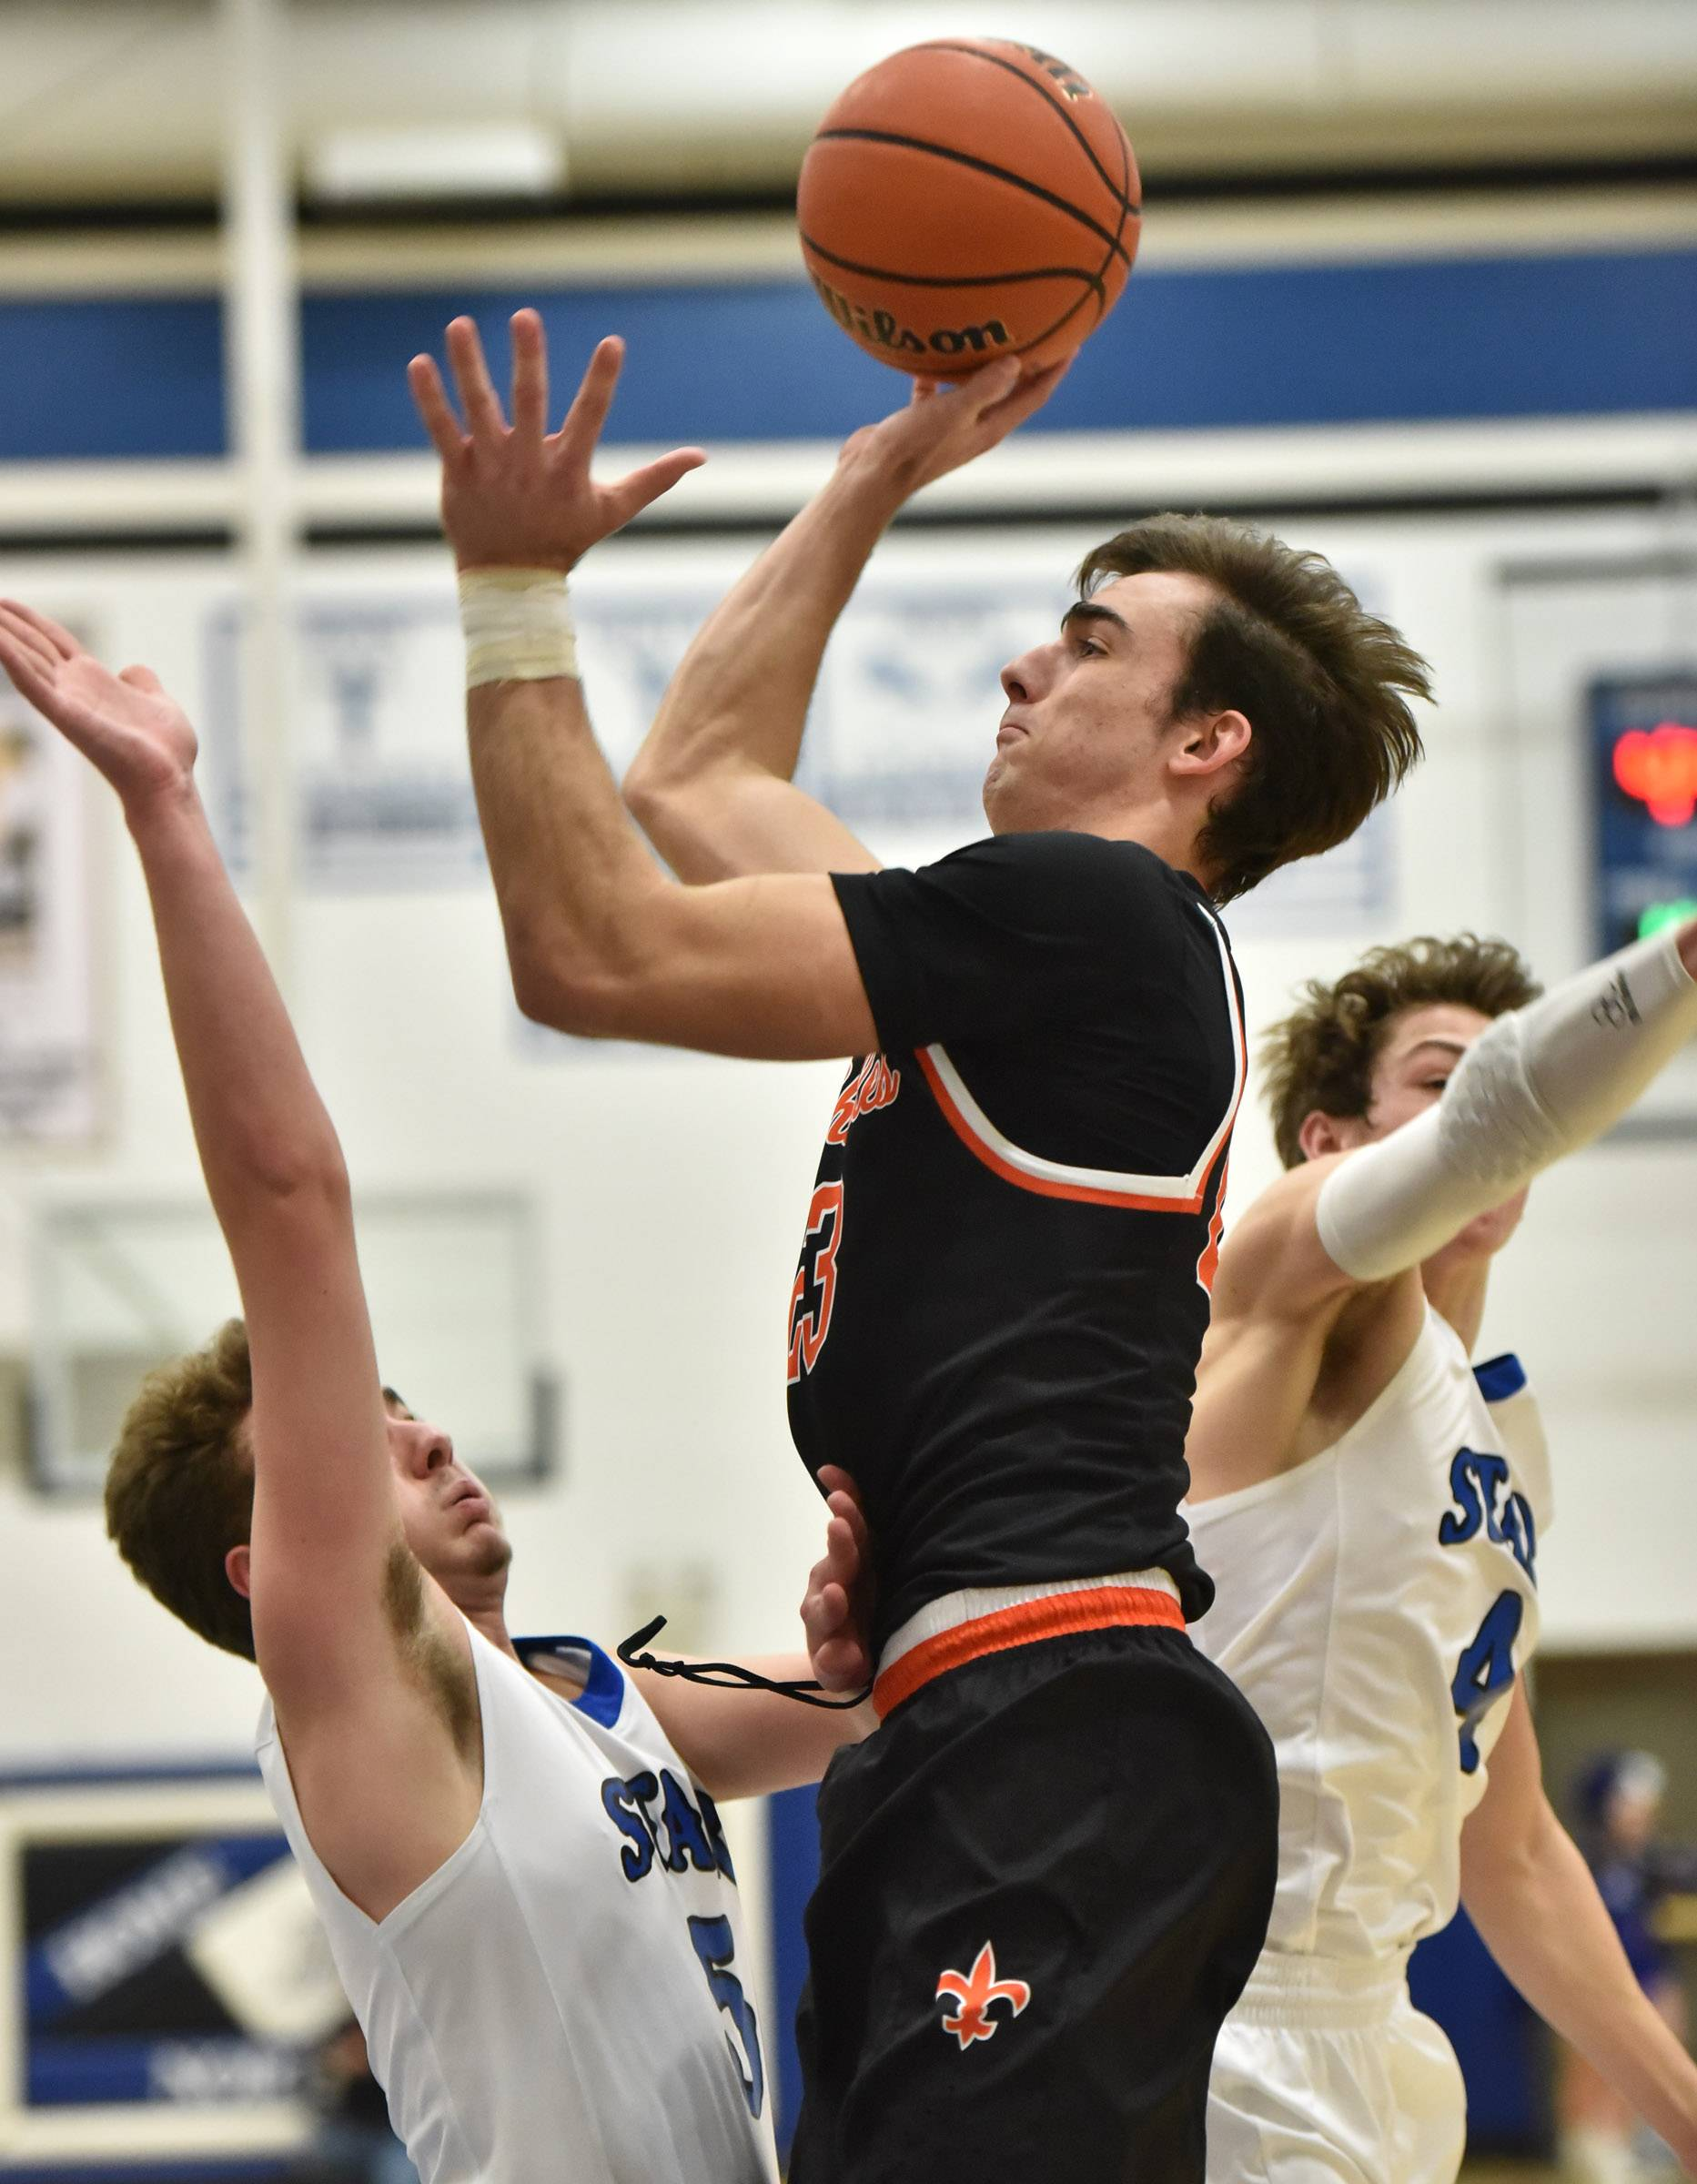 St. Charles East's Zachary Mitchell shoots against St. Charles North's Brendan Dal Degan and Anthony Delisi Tuesday in St. Charles.